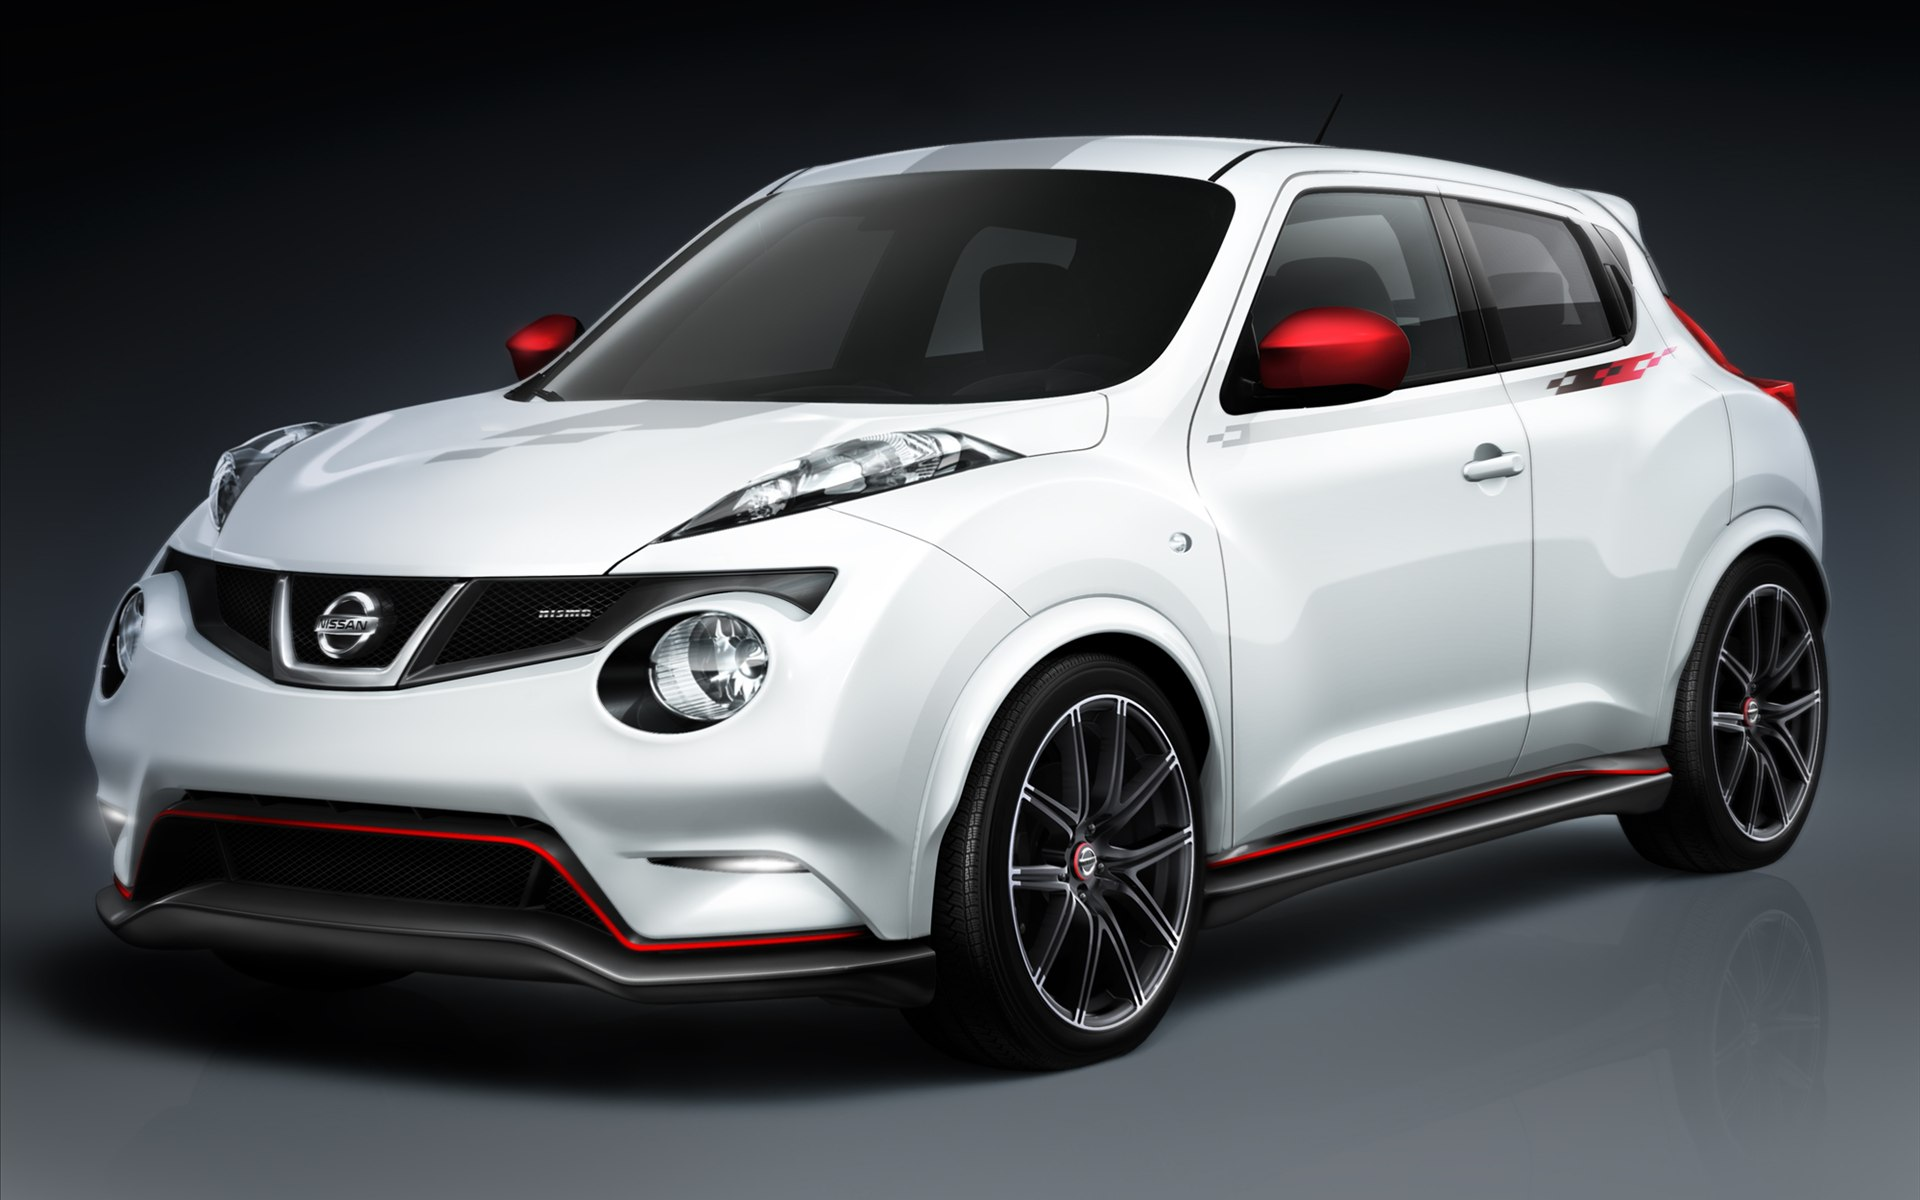 2011 nissan juke nismo concept wallpaper hd car. Black Bedroom Furniture Sets. Home Design Ideas